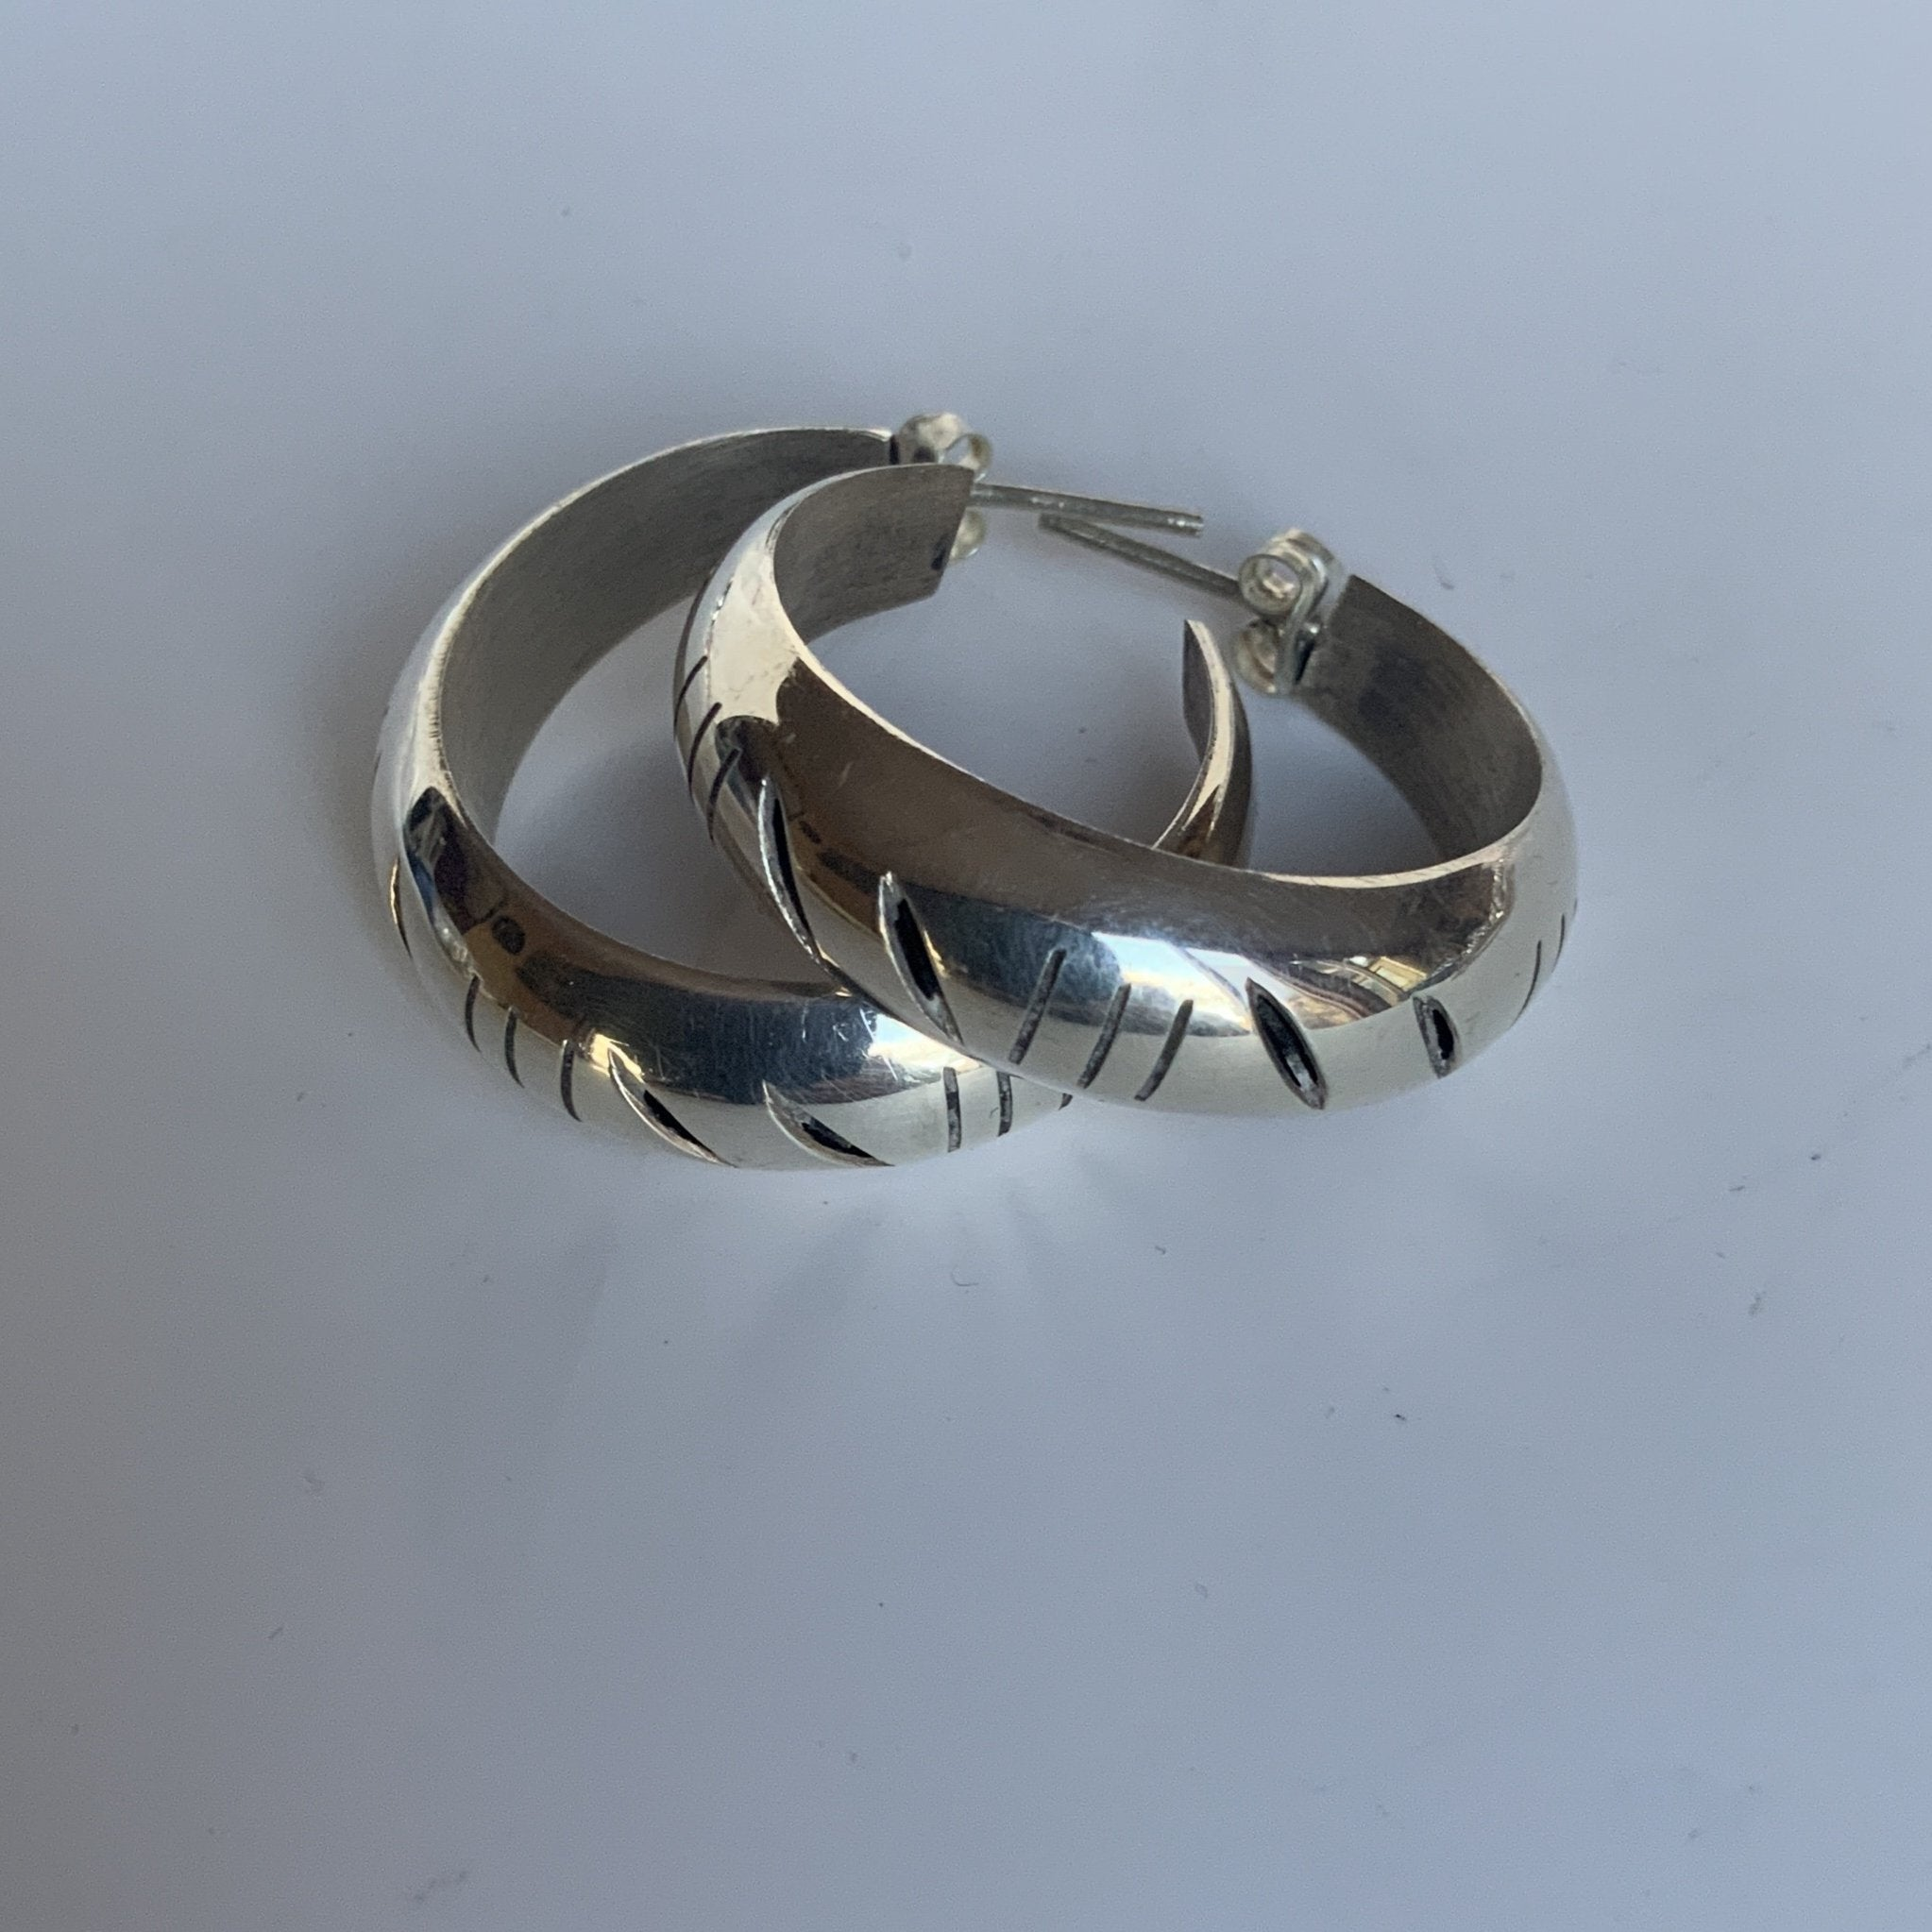 Classic Spanish Knife Hoop Earrings